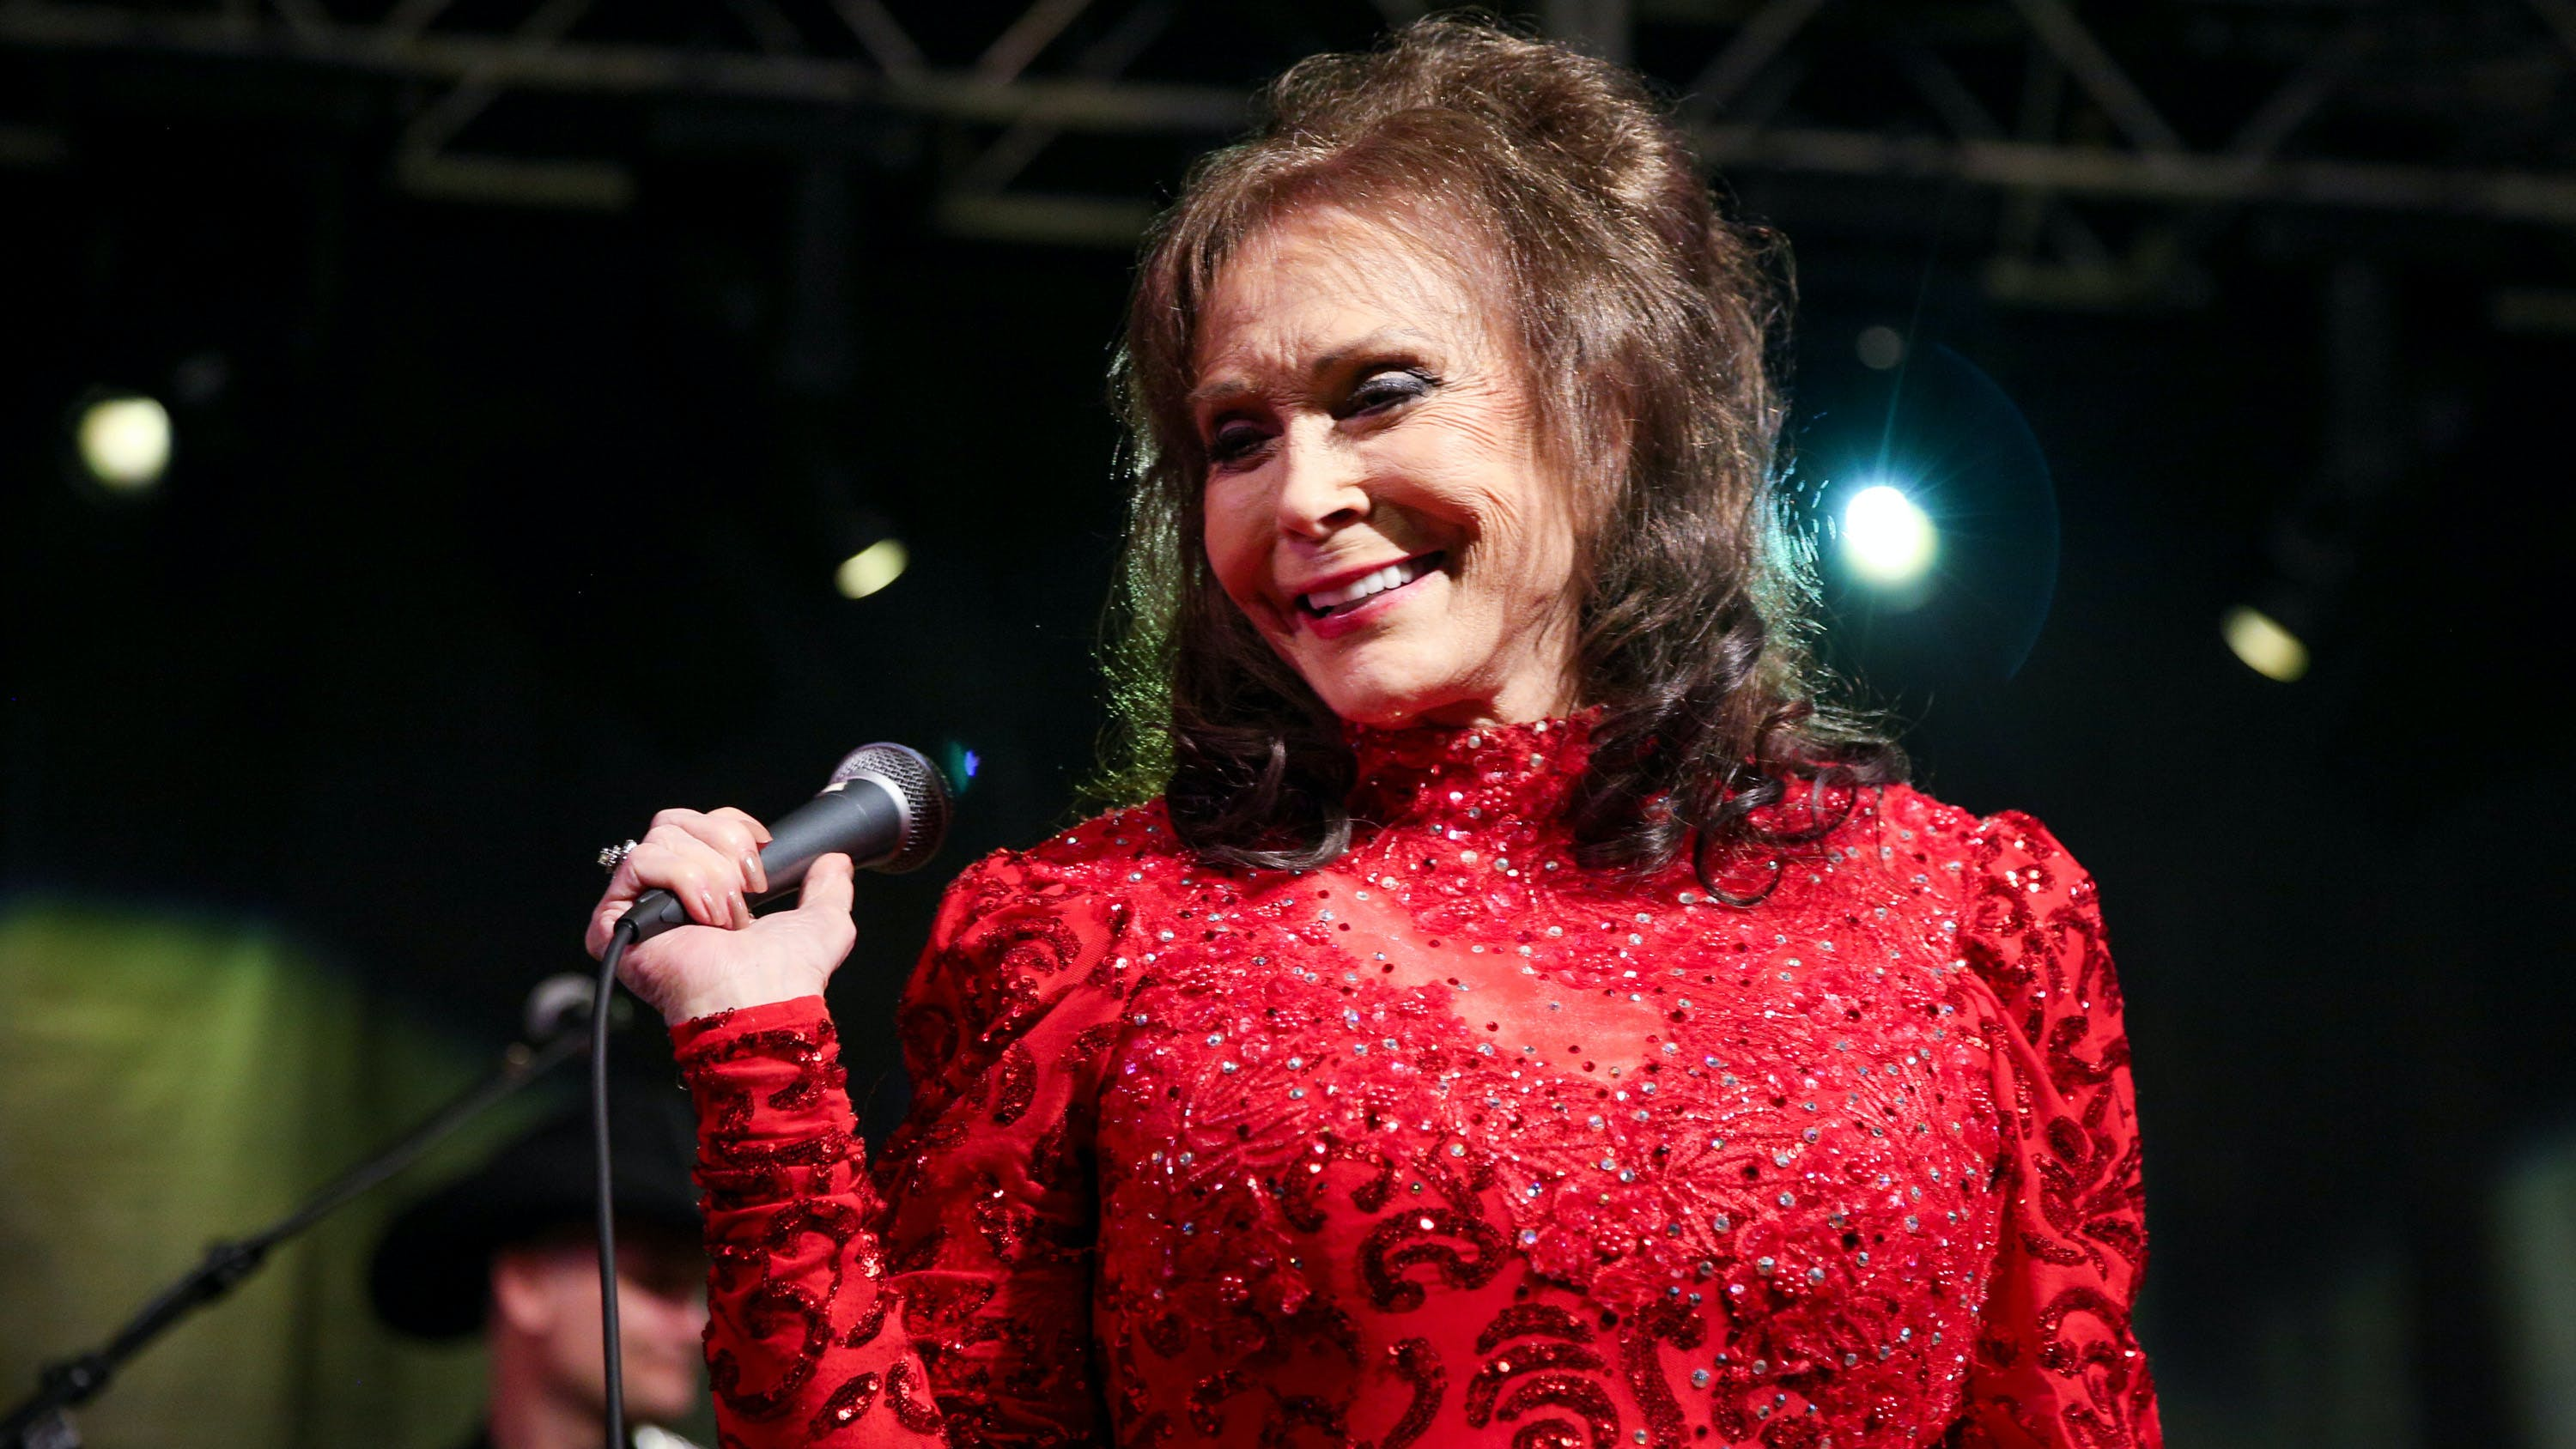 Loretta Lynn performs at the BBC Music Showcase at Stubb's during South By Southwest on Thursday, March 17, 2016, in Austin, Texas.